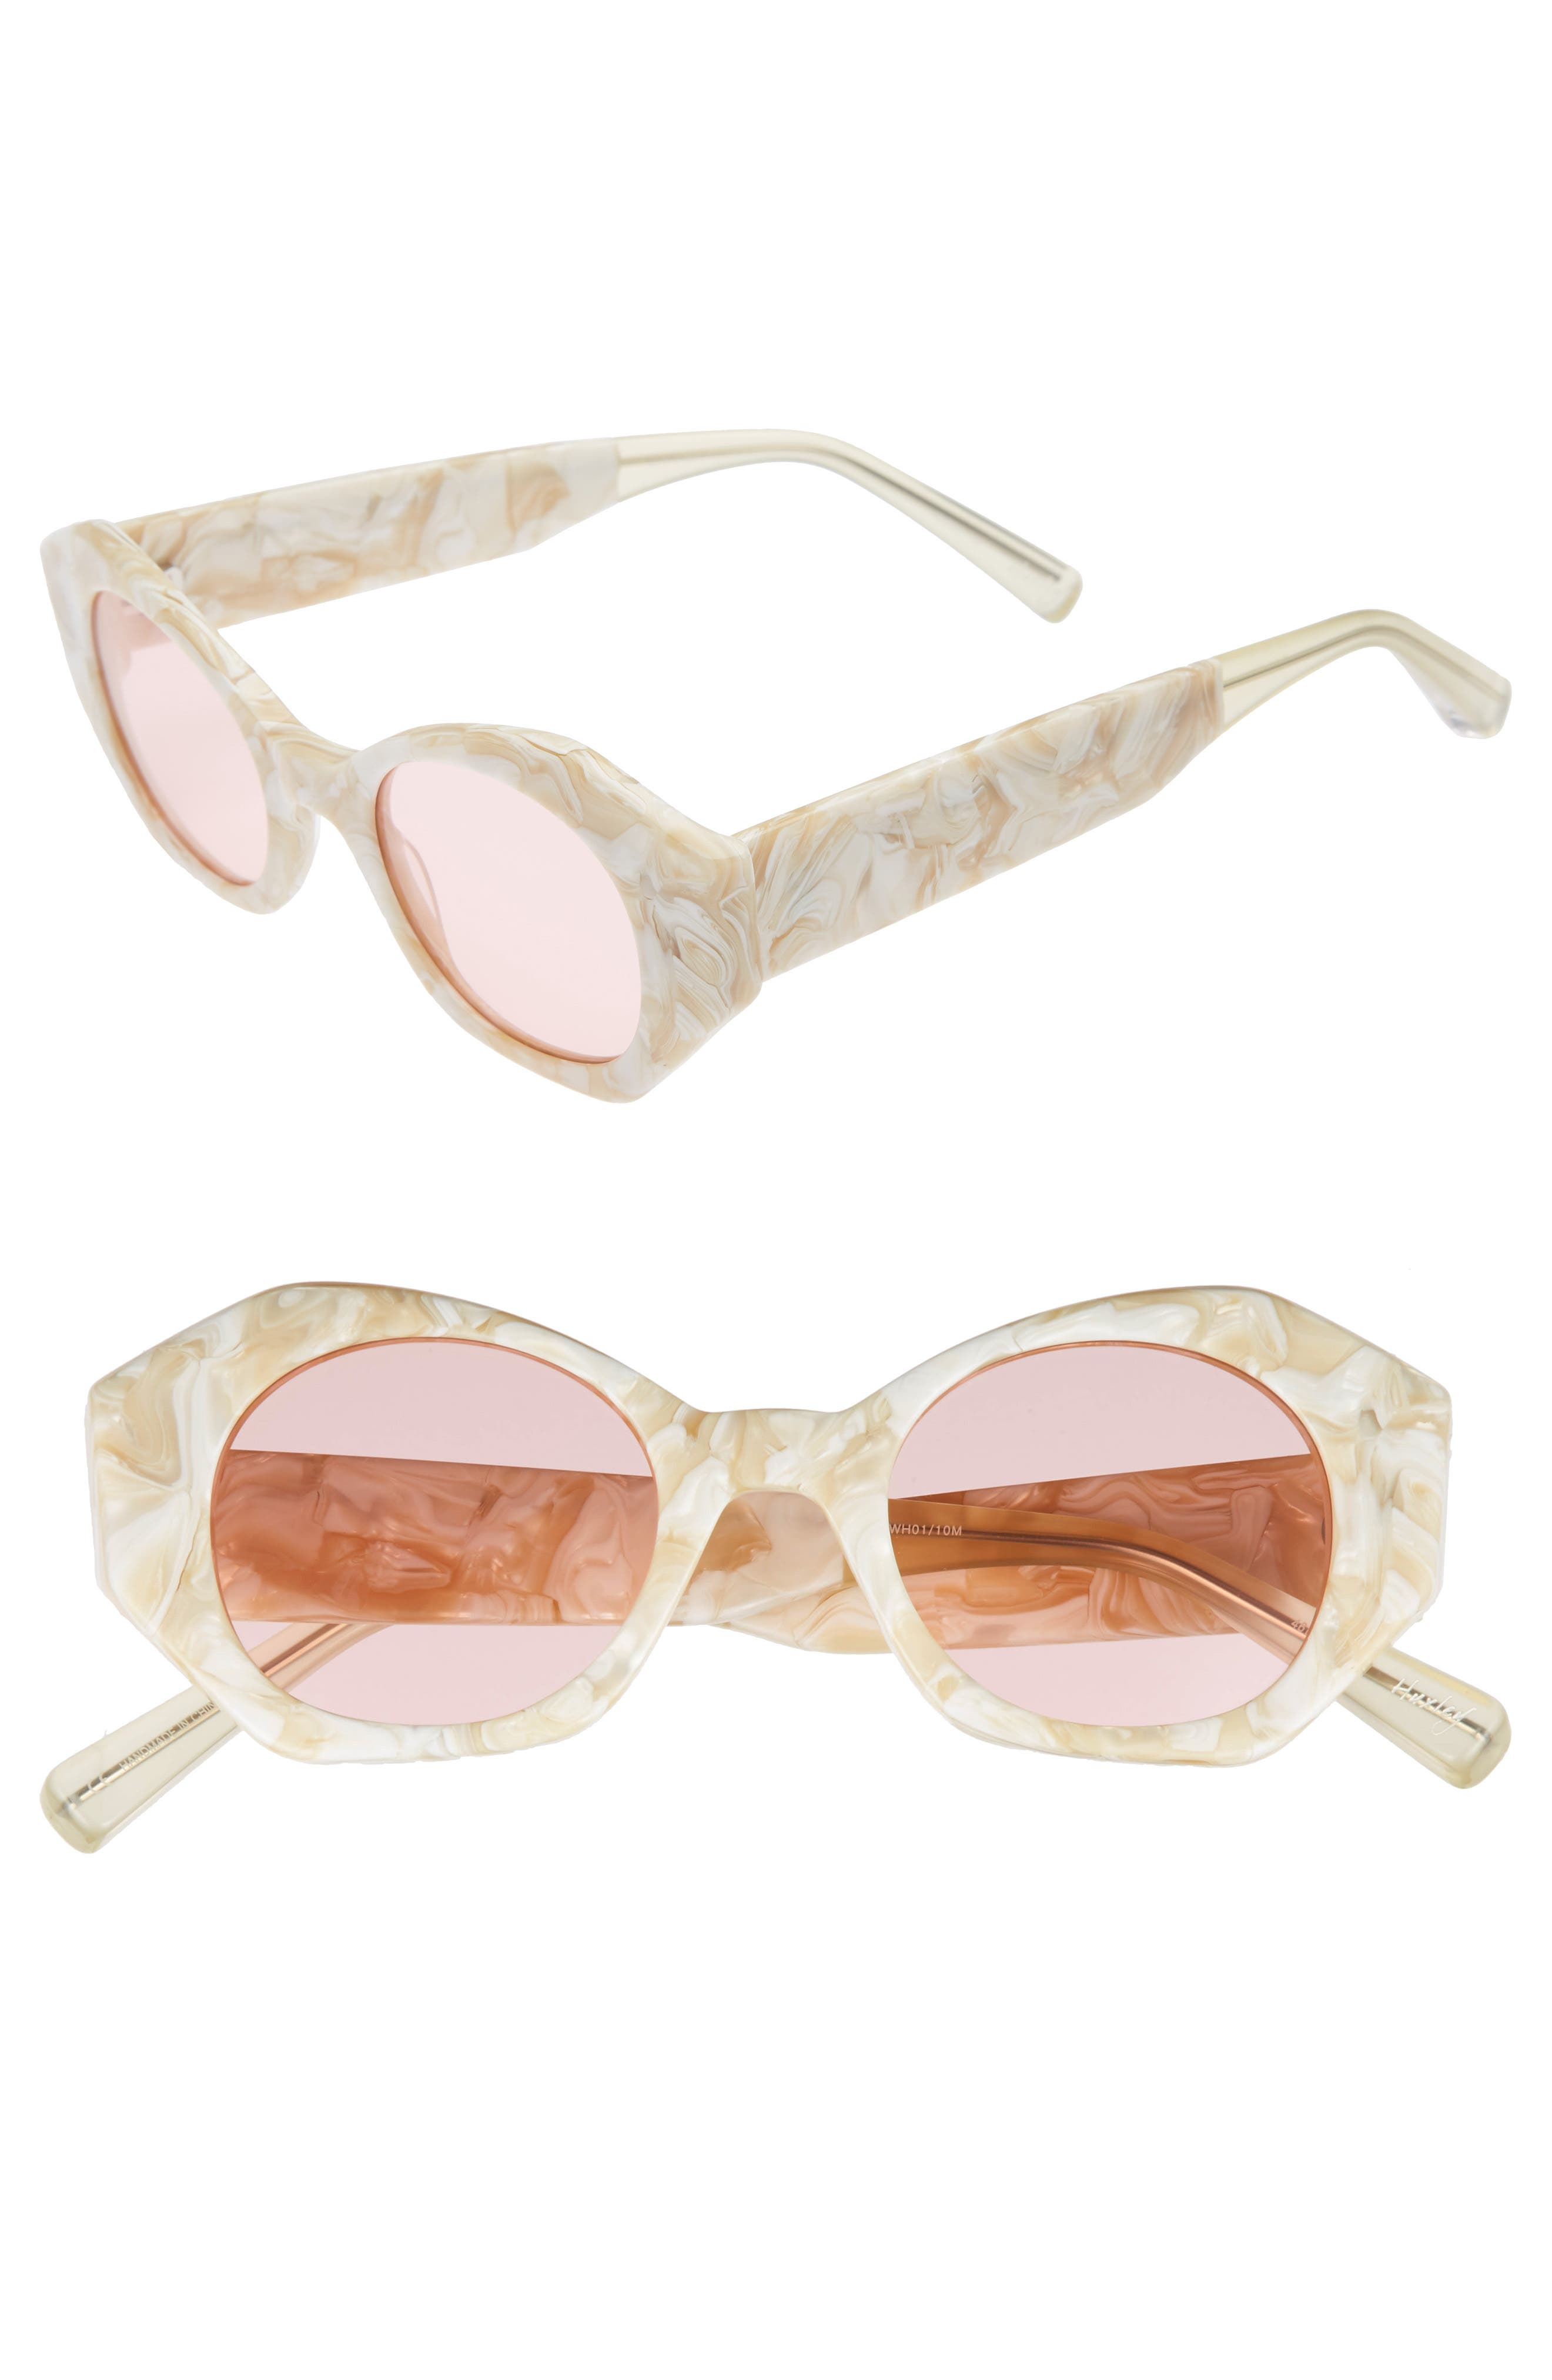 Huxley 46mm Geometric Sunglasses,                             Main thumbnail 1, color,                             White/ Pink